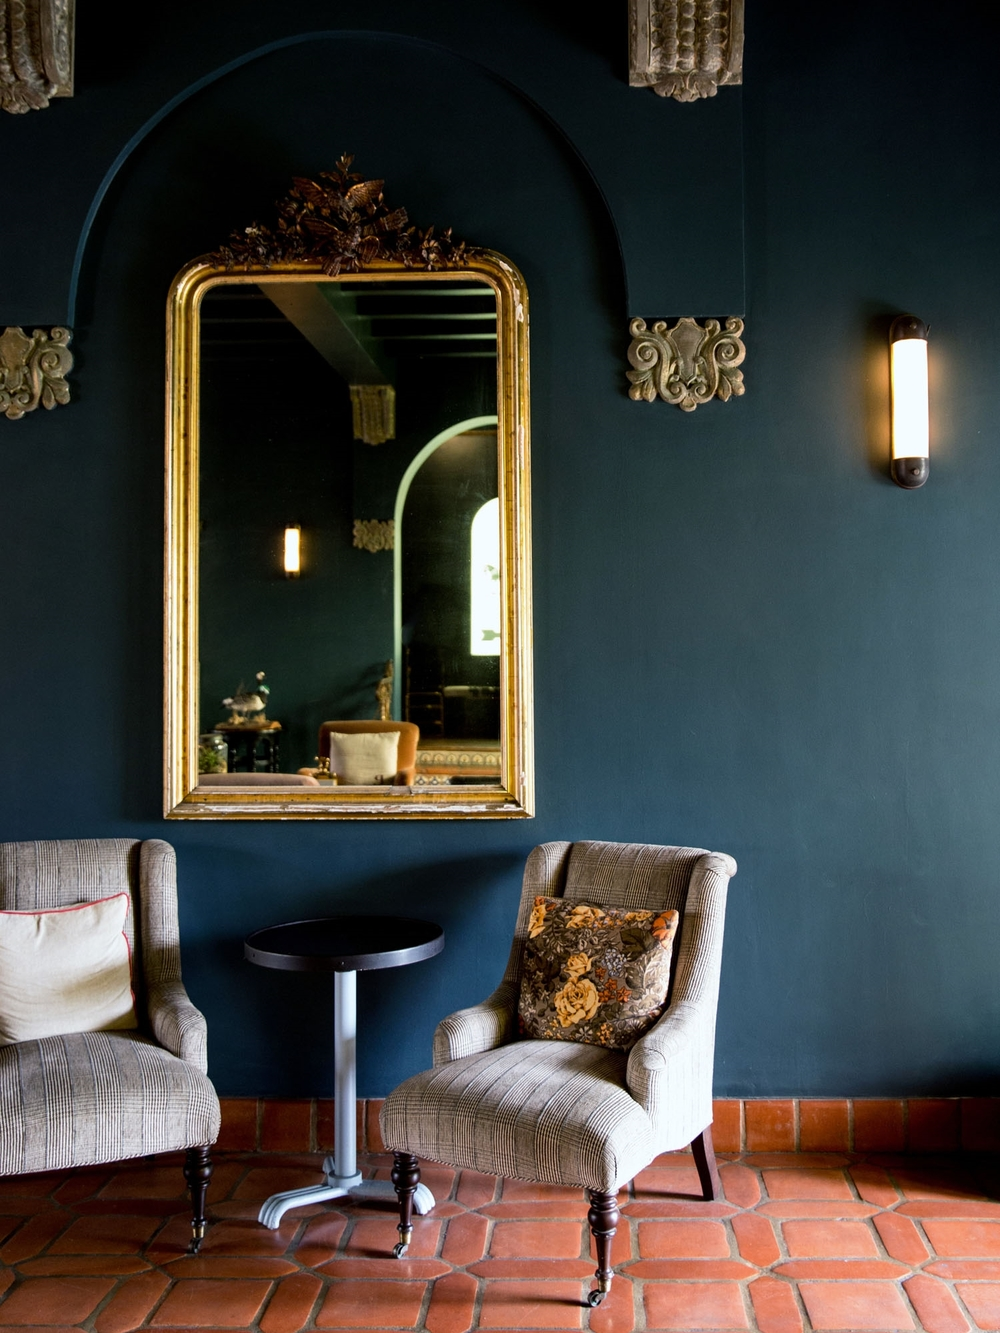 GQ_Avi_Palihouse_08182015_8186.jpg